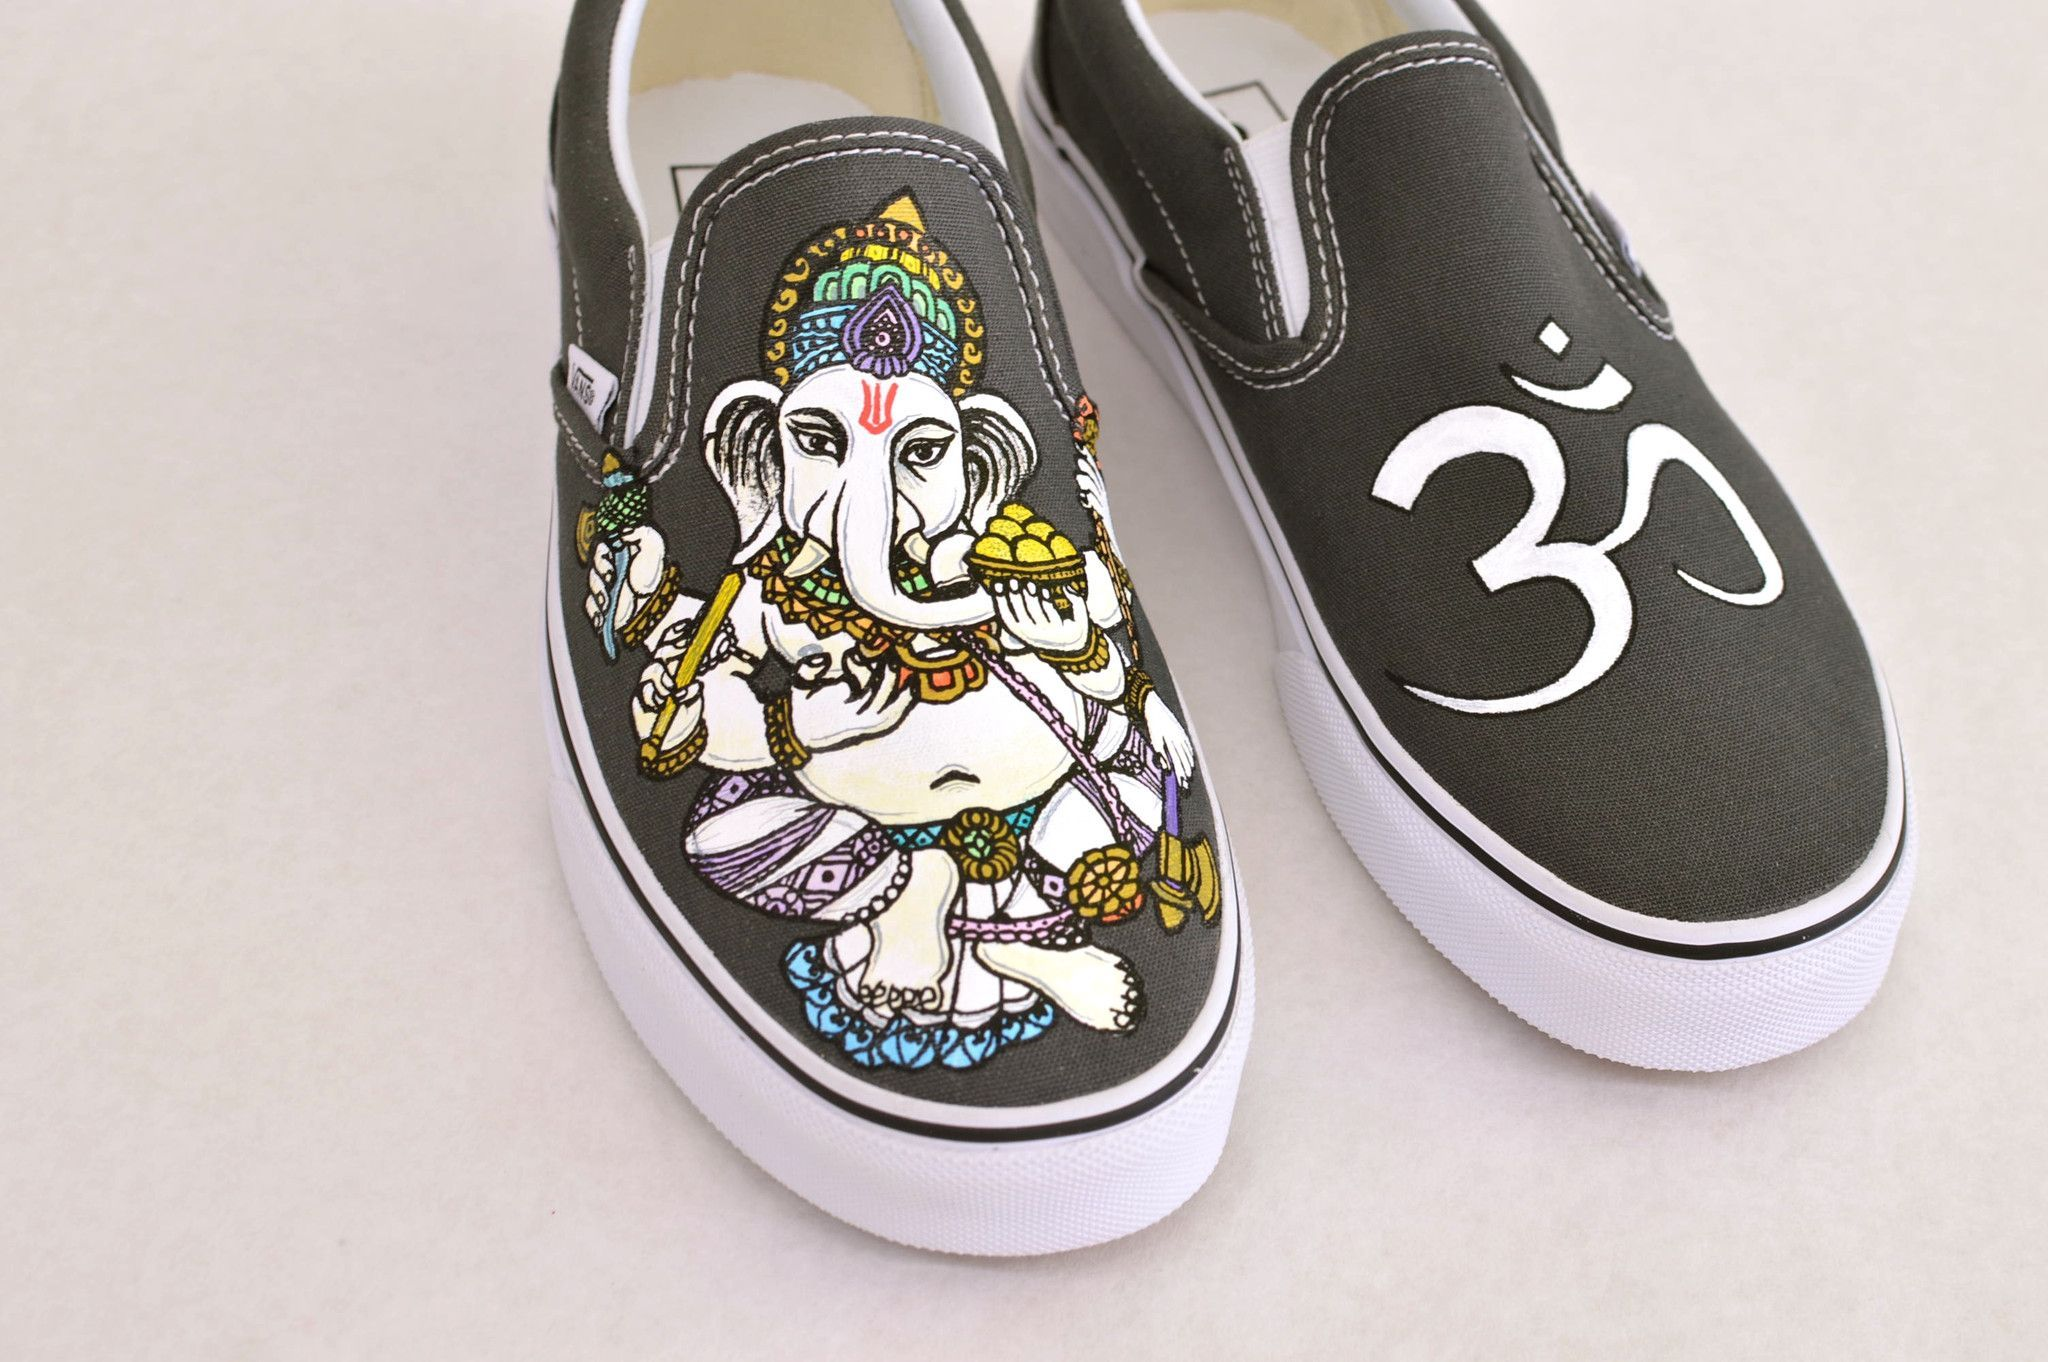 0350985c98 These one-of-a-kind hand-painted Pewter Slip-on Vans shoes feature Ganesha  the…